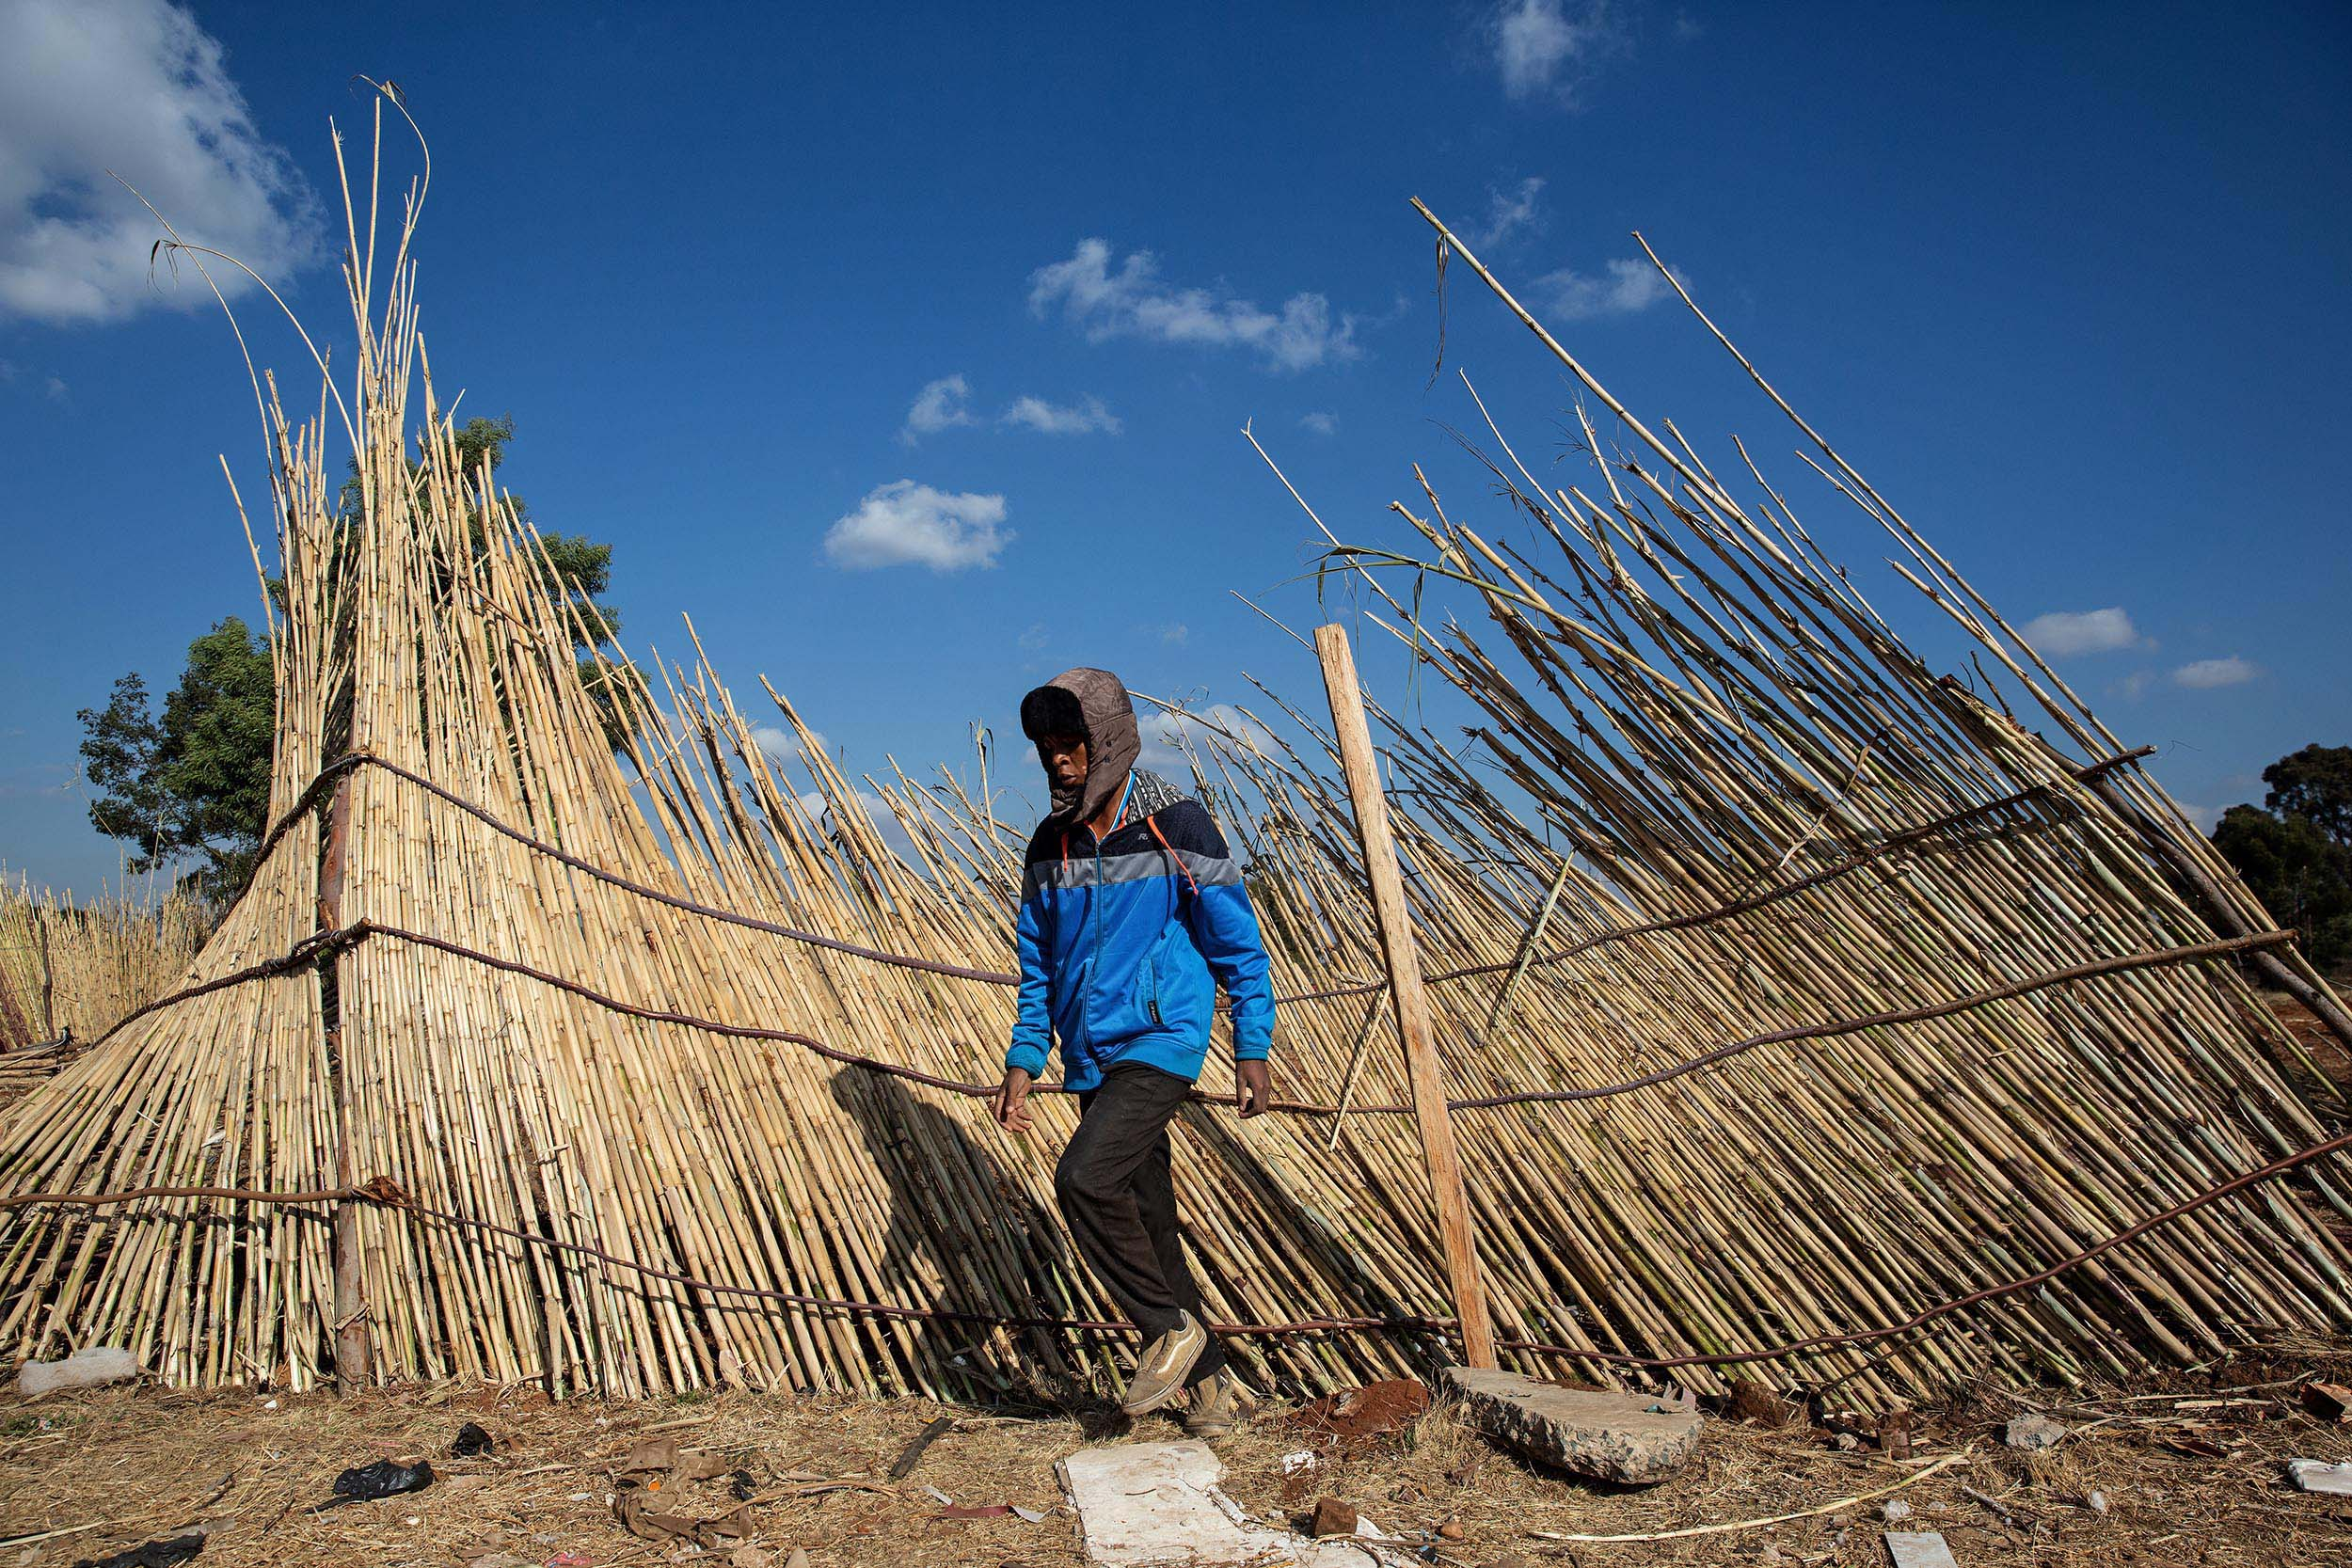 9 July 2020: A man fixes a fence blown down by the wind. The fence encloses a field that has been set aside to grow vegetables to assist the hungry Makause community.